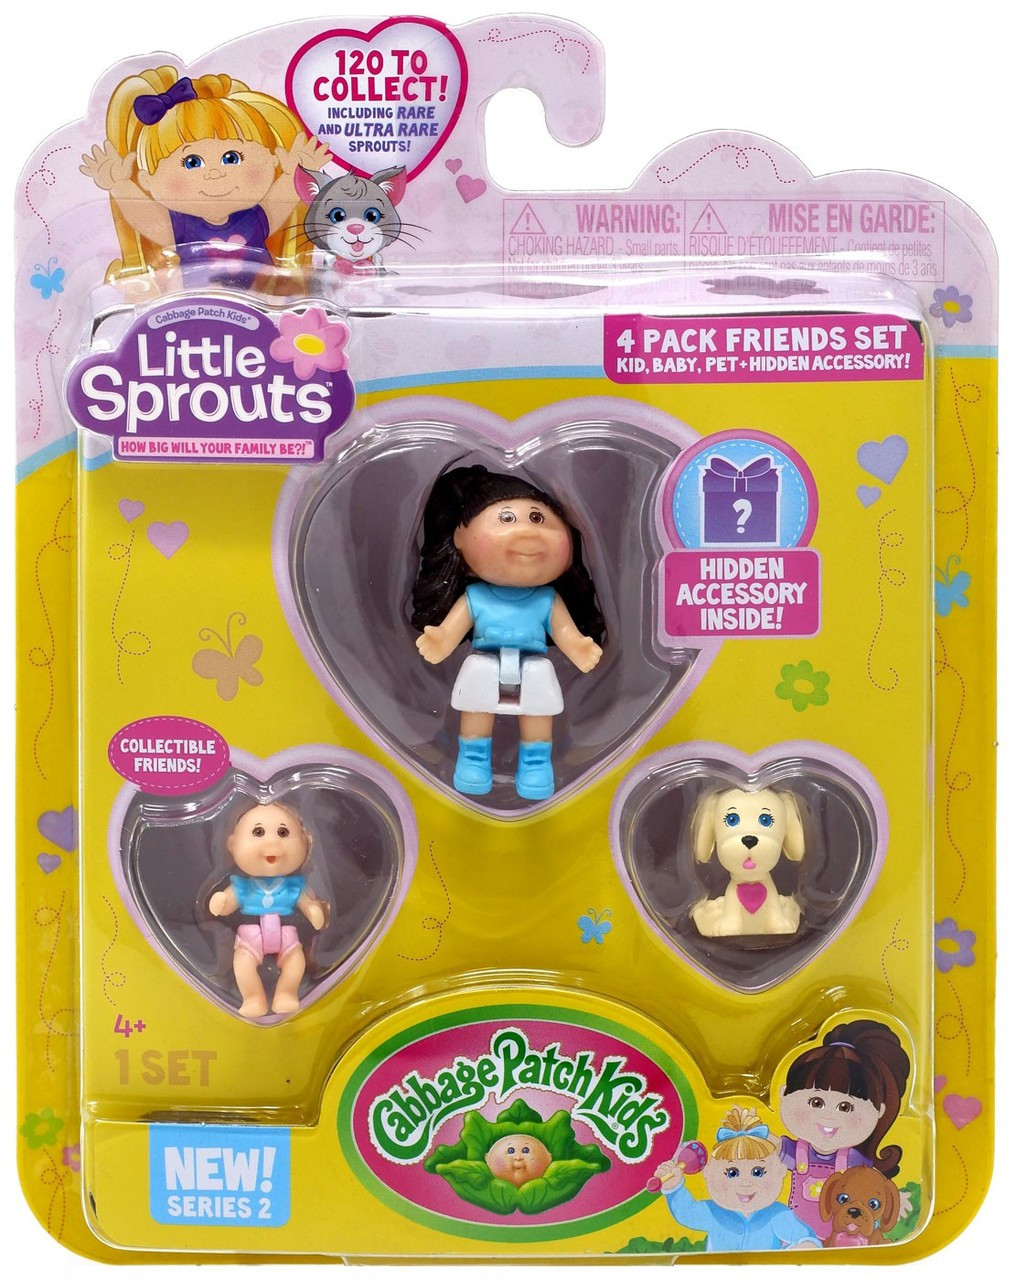 Cabbage Patch Kids Little Sprouts Series 2 Cassidy Giselle Mini Figure 4-Pack